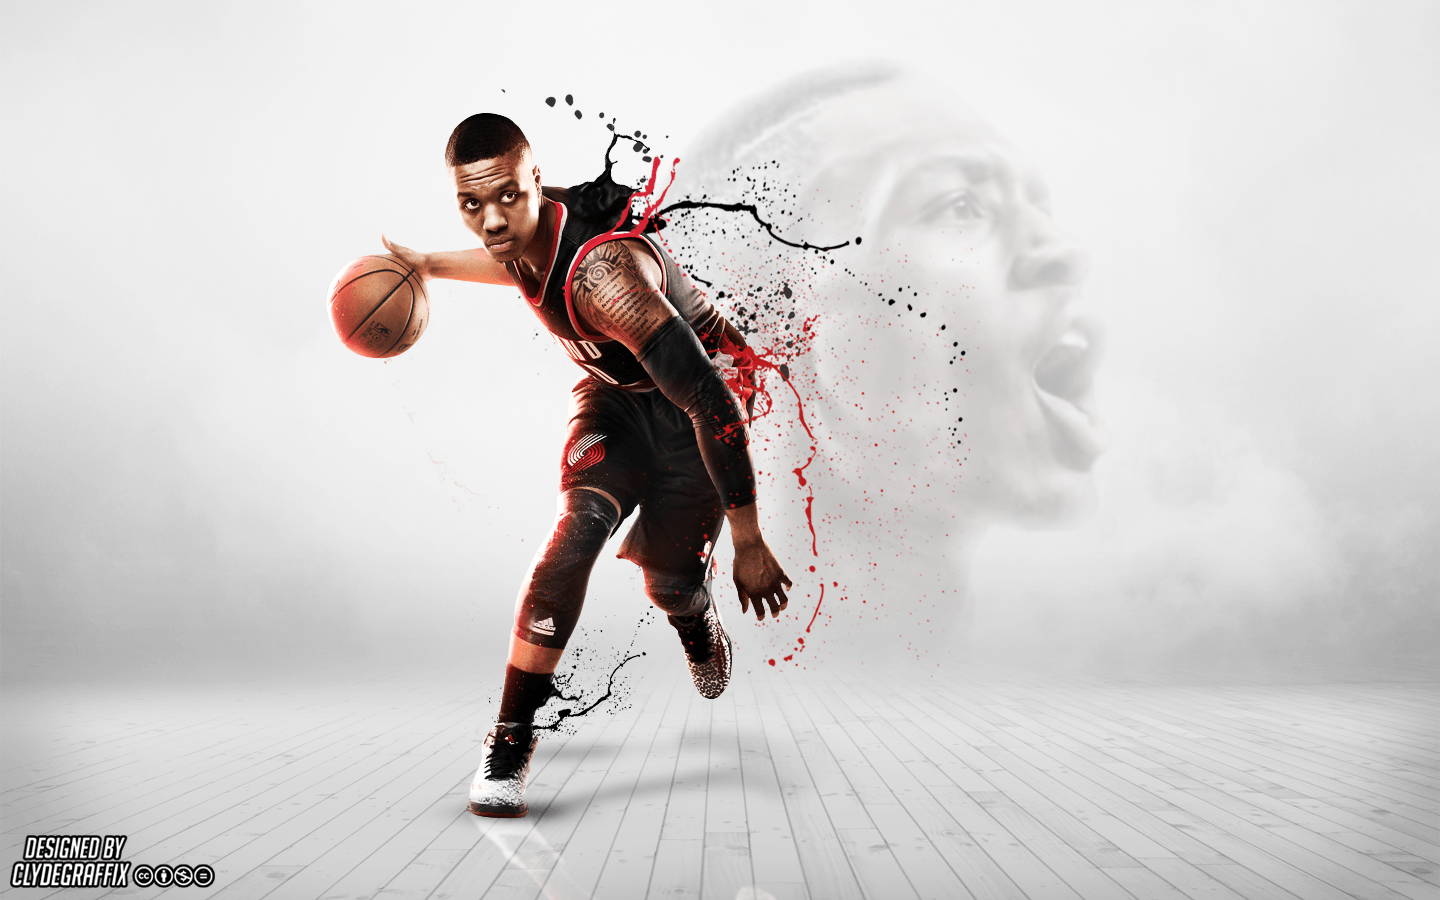 Made a Dame wallpapers I thought some of you guys might like : ripcity